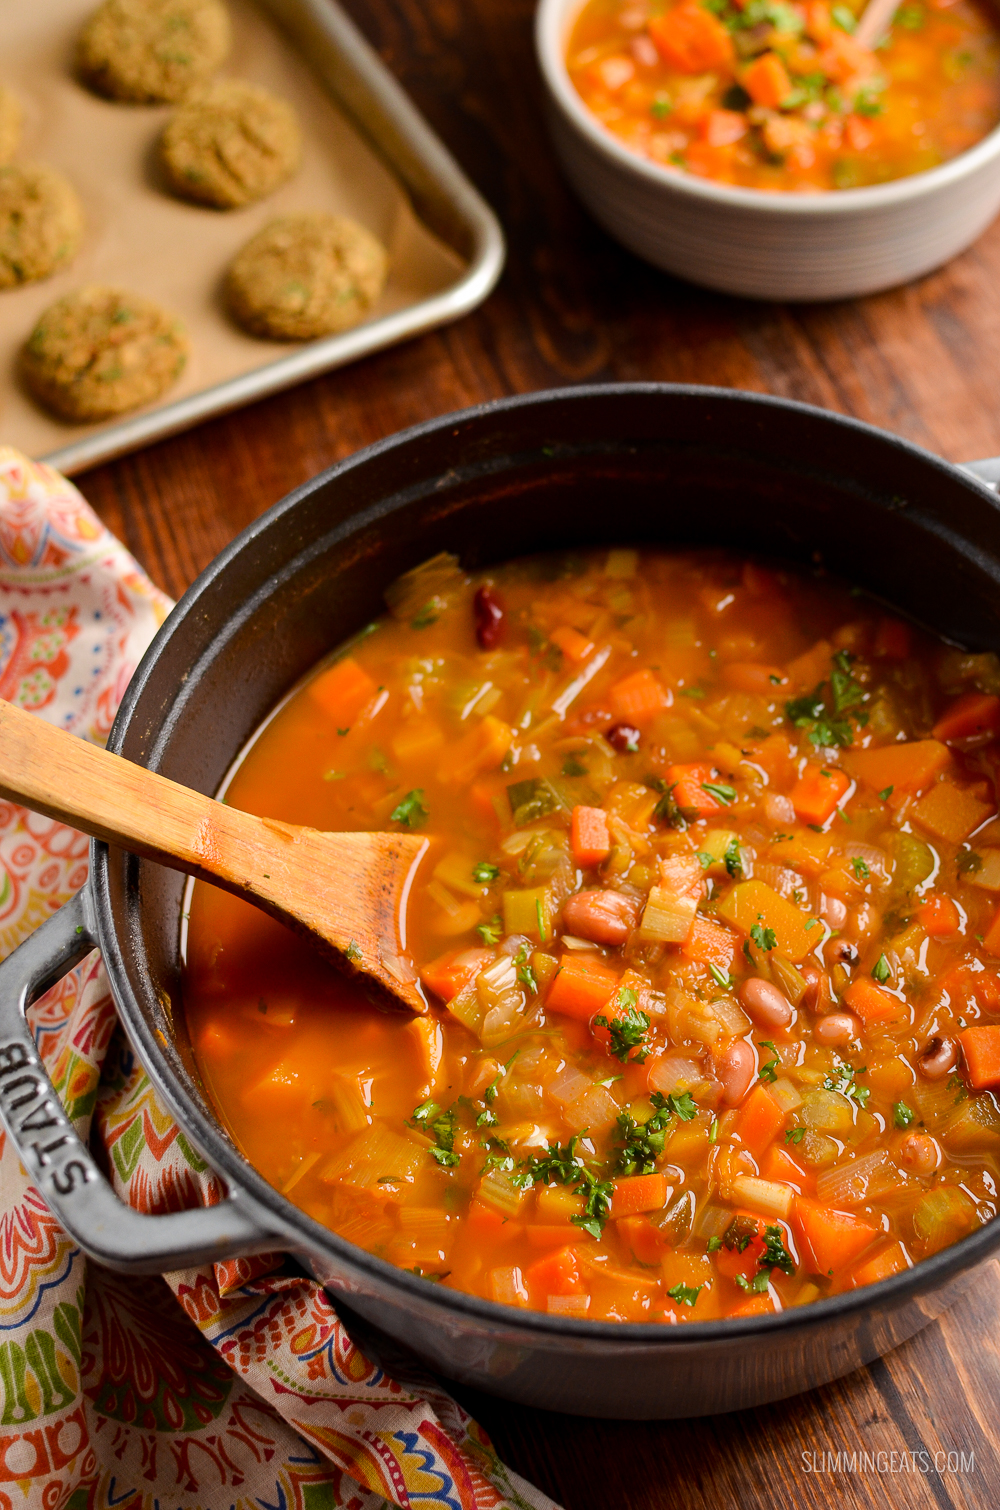 vegetable and bean stew in a cast iron pot with dumplings in background